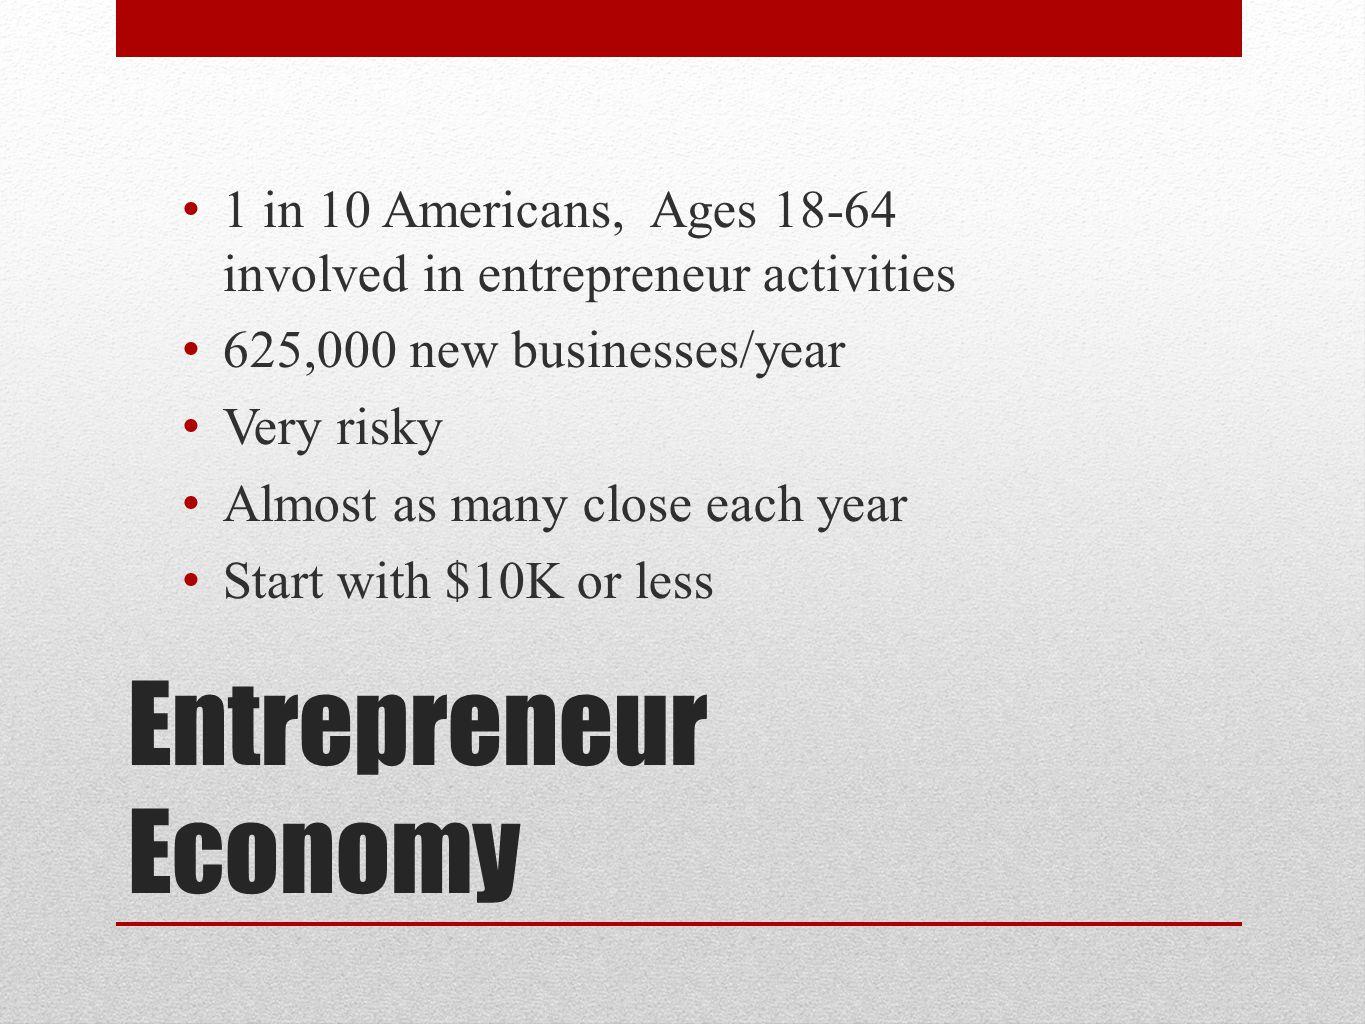 1 in 10 Americans, Ages 18-64 involved in entrepreneur activities